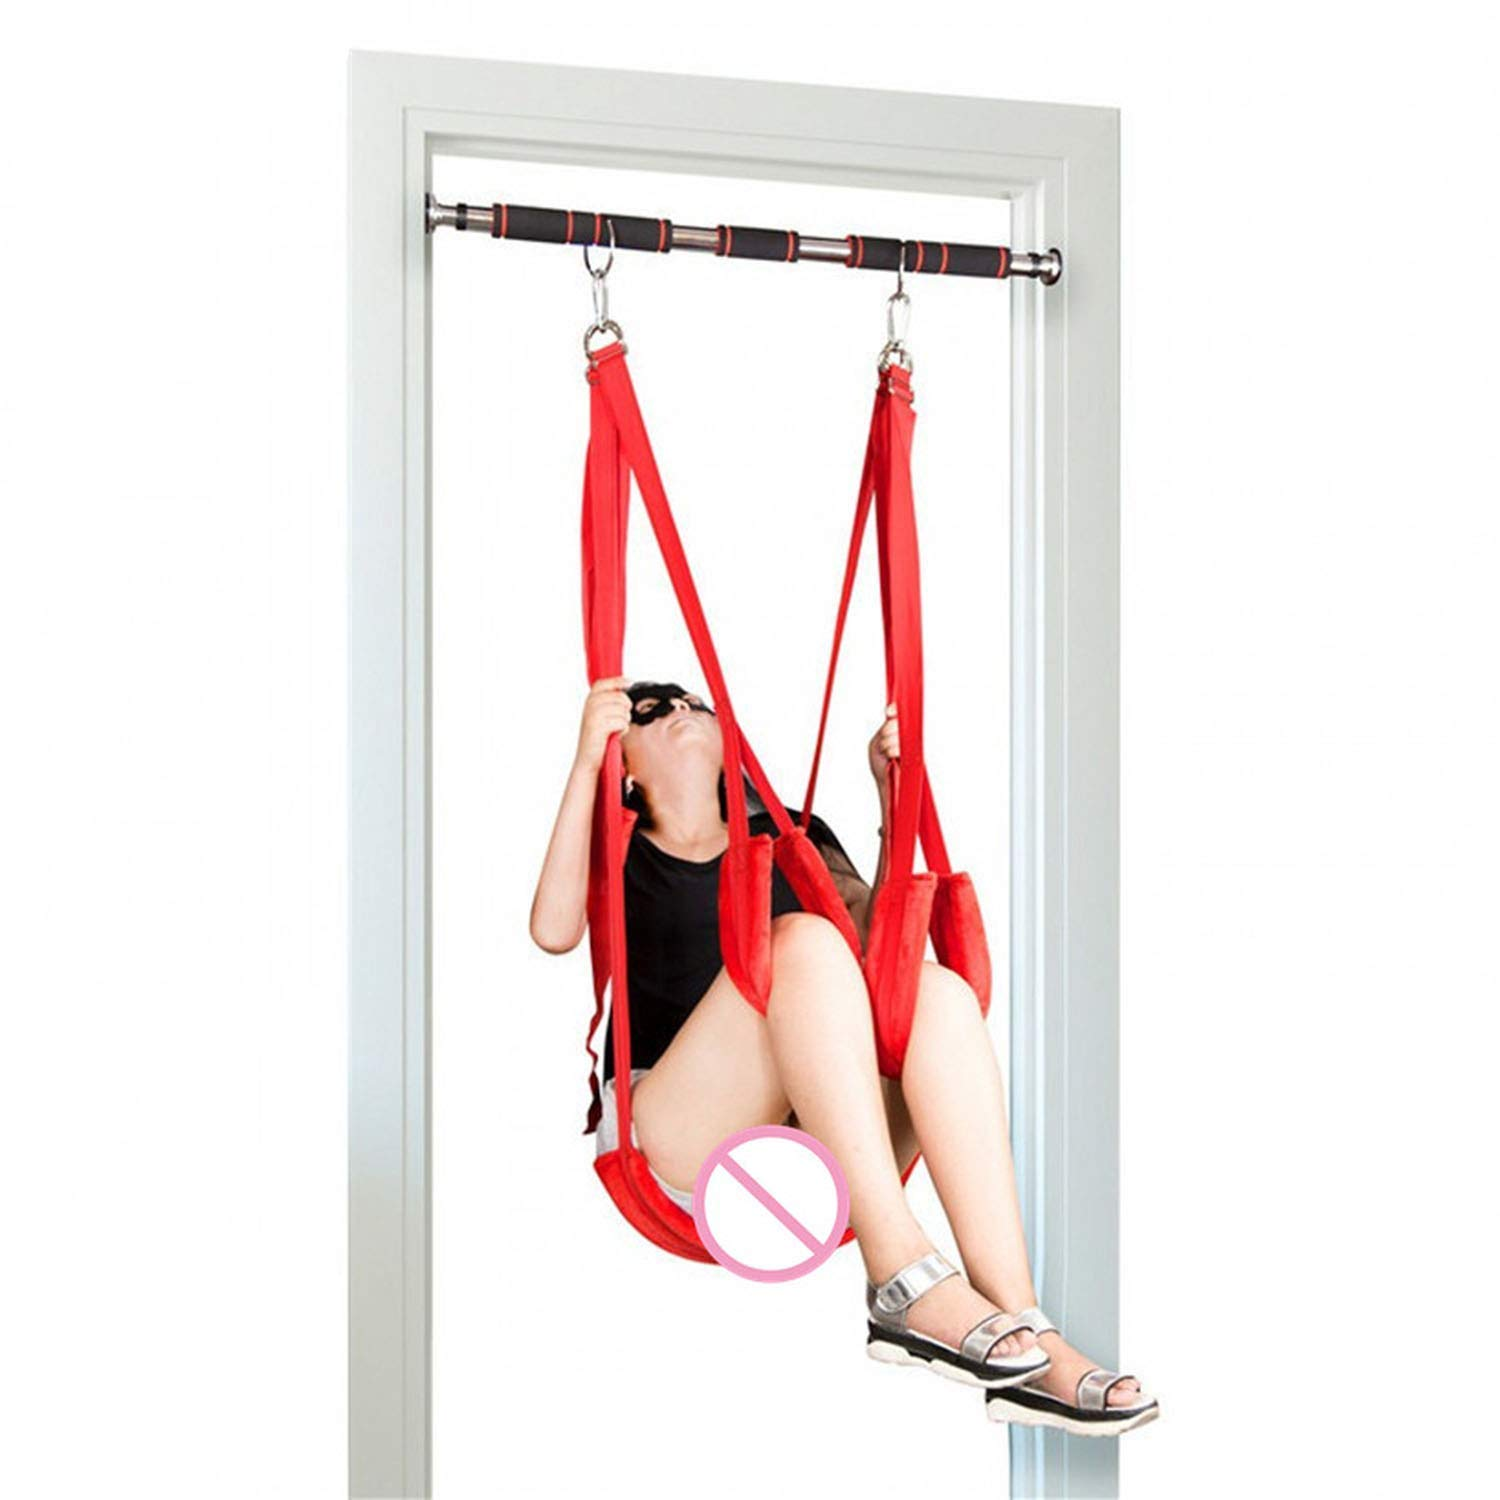 Sucking Sex Toys Suction Adult Sex Swing Chairs Hanging Love Swing Sex Toys for Couples Erotic Products Door Swing Sex Shop Sex Furnitur by JingGG